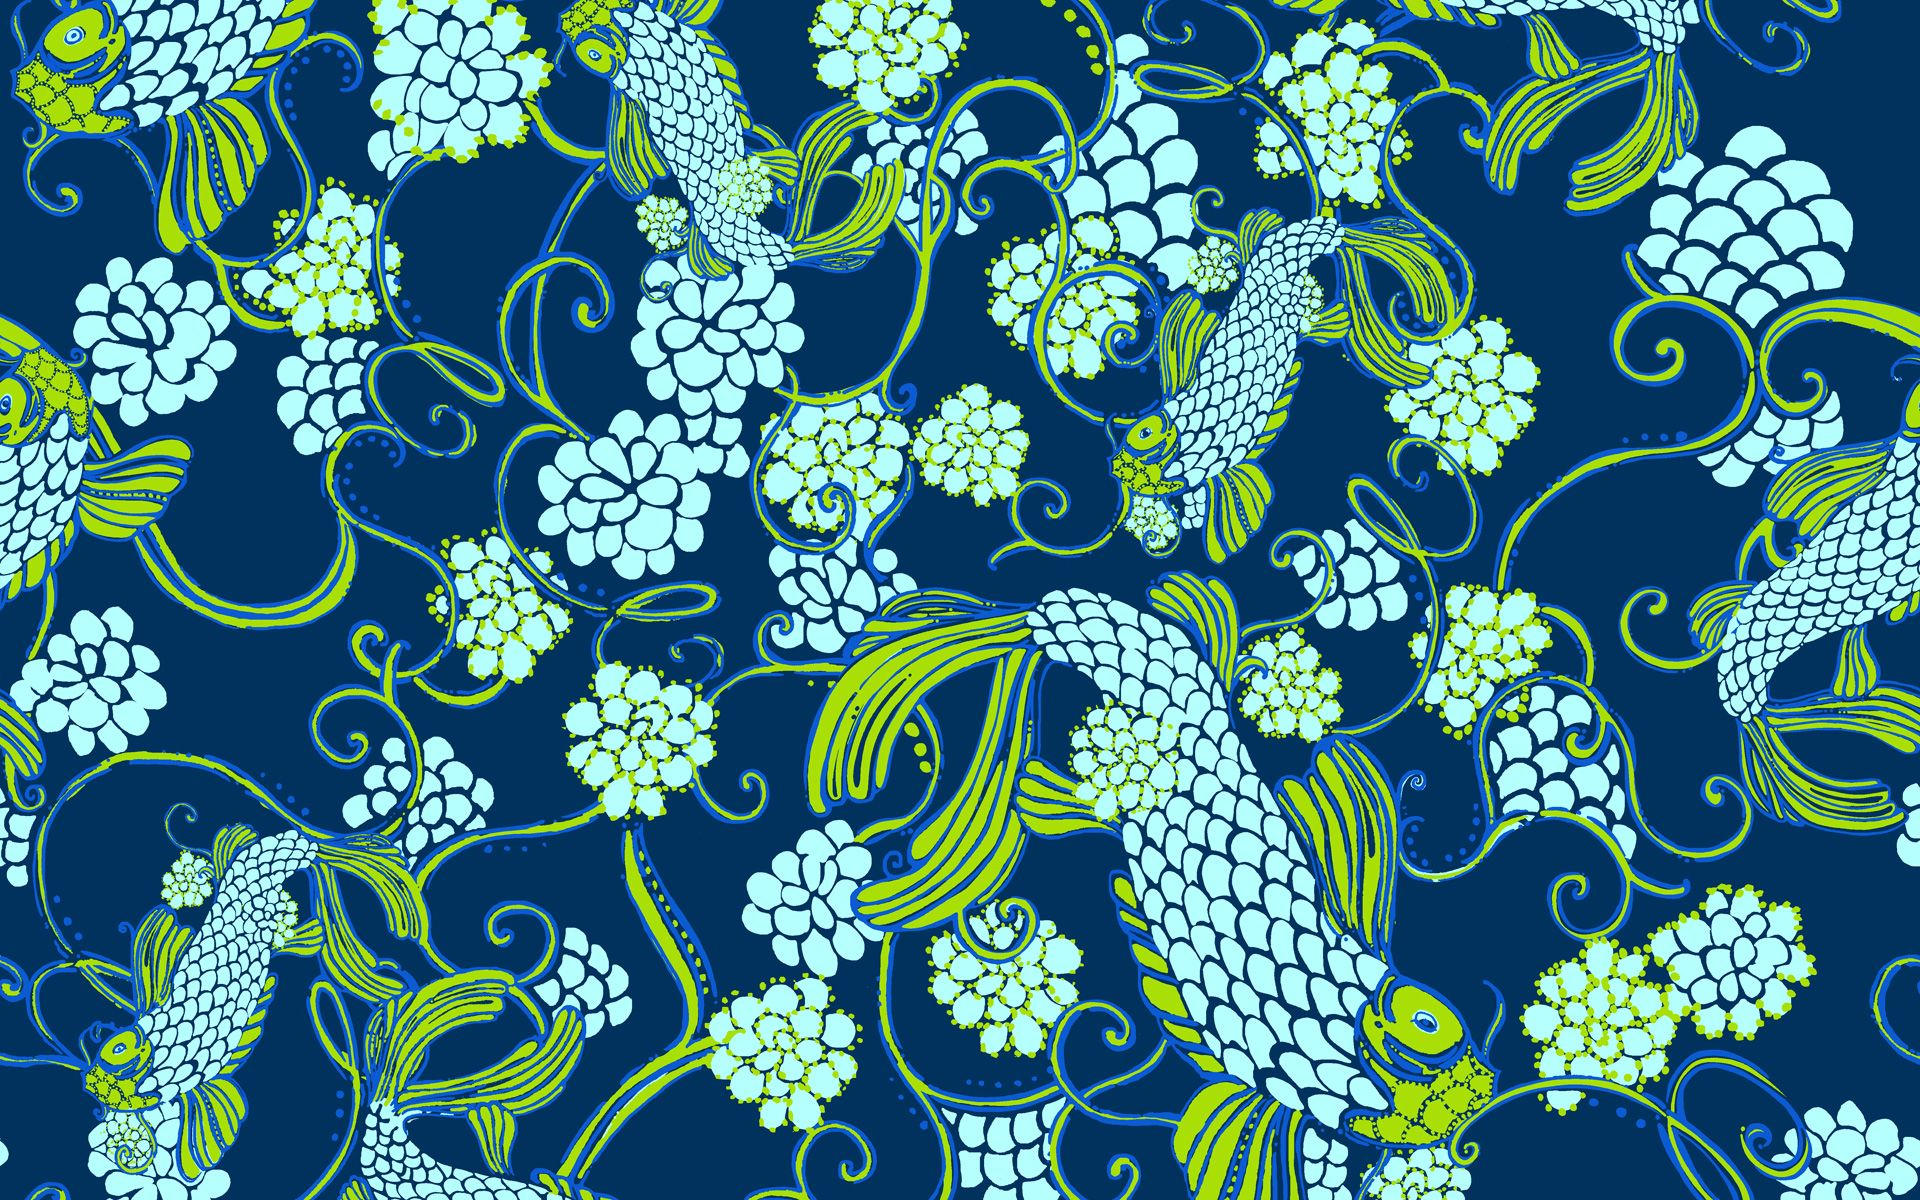 lily puliter desktop background a· lilly pulitzer